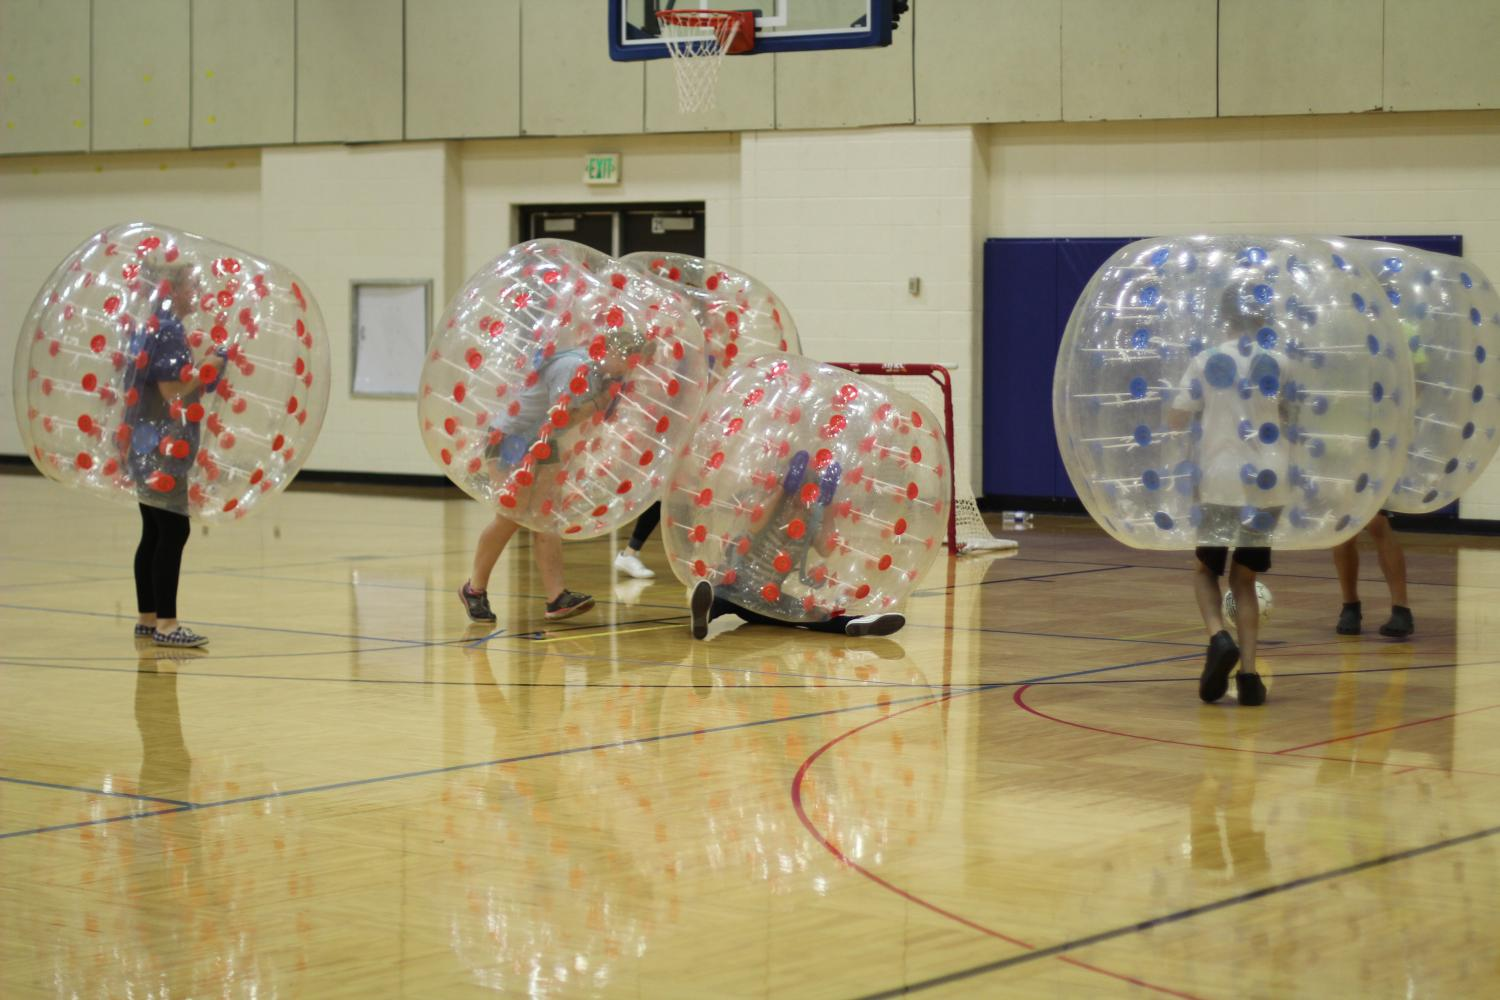 Student Council members in the middle of a game of 'Wubble Bubble' Soccer.